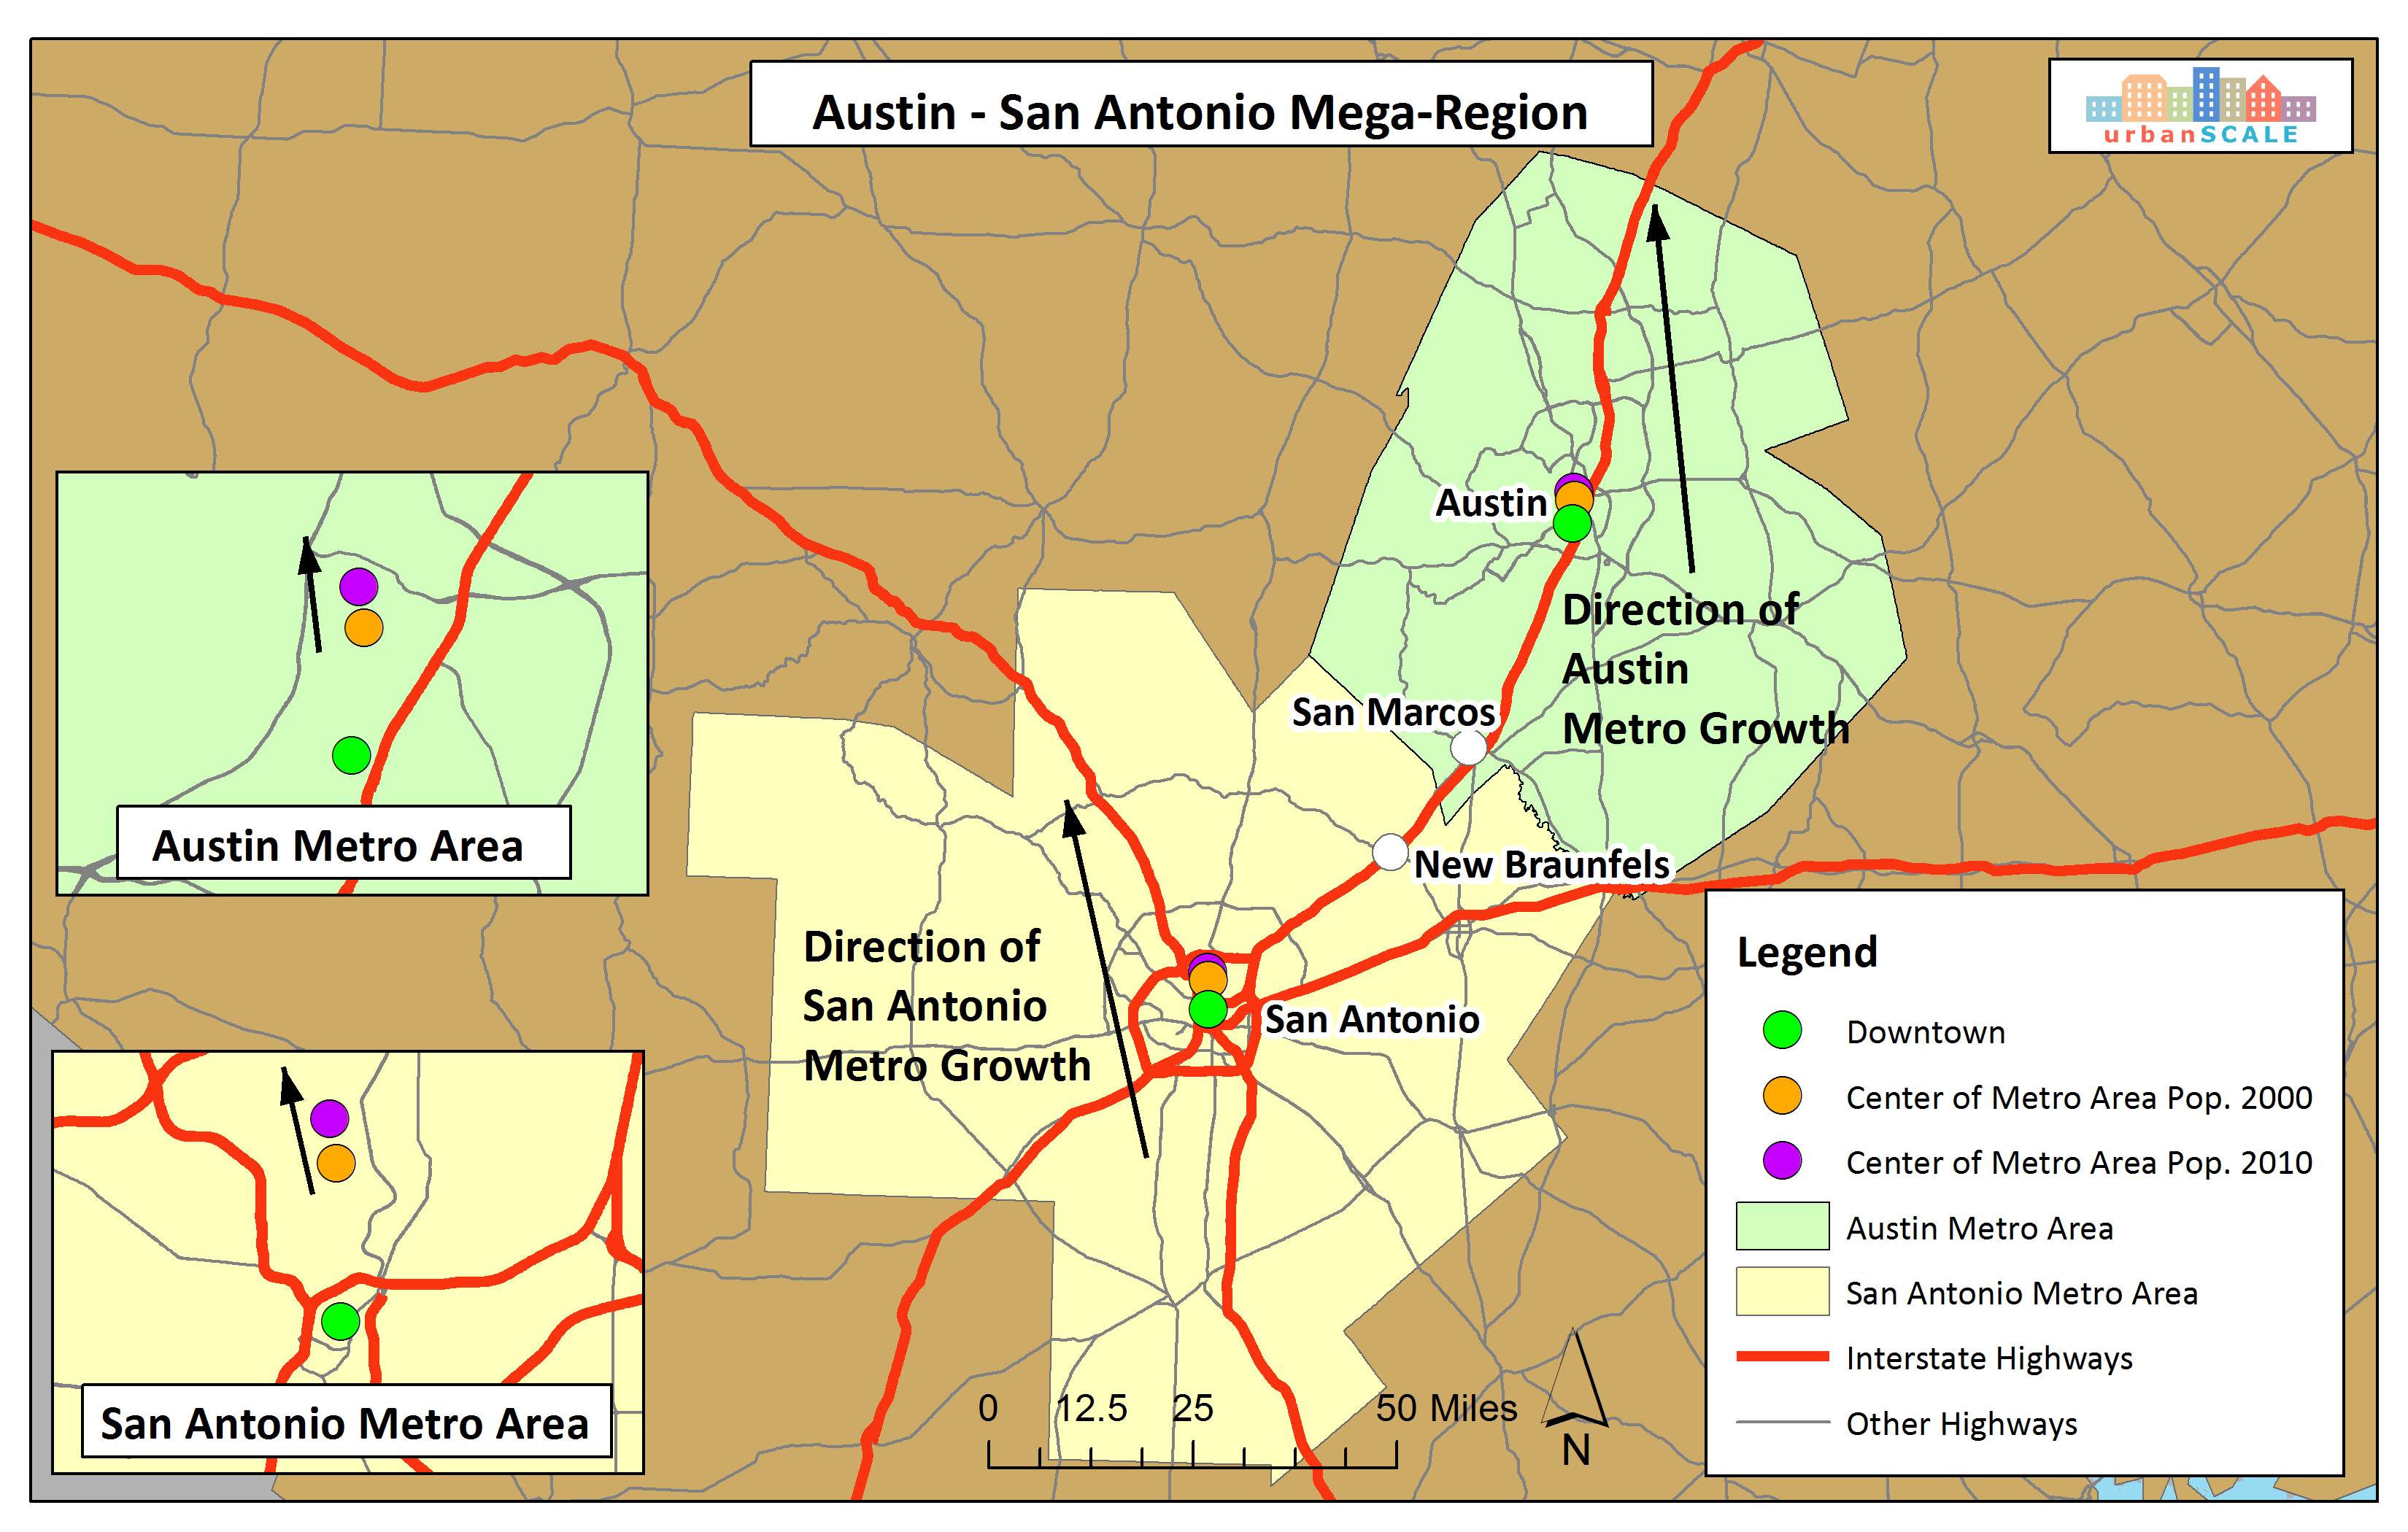 Key Ingredients To Create A MegaRegion UrbanSCALEcom - Austin metro area map